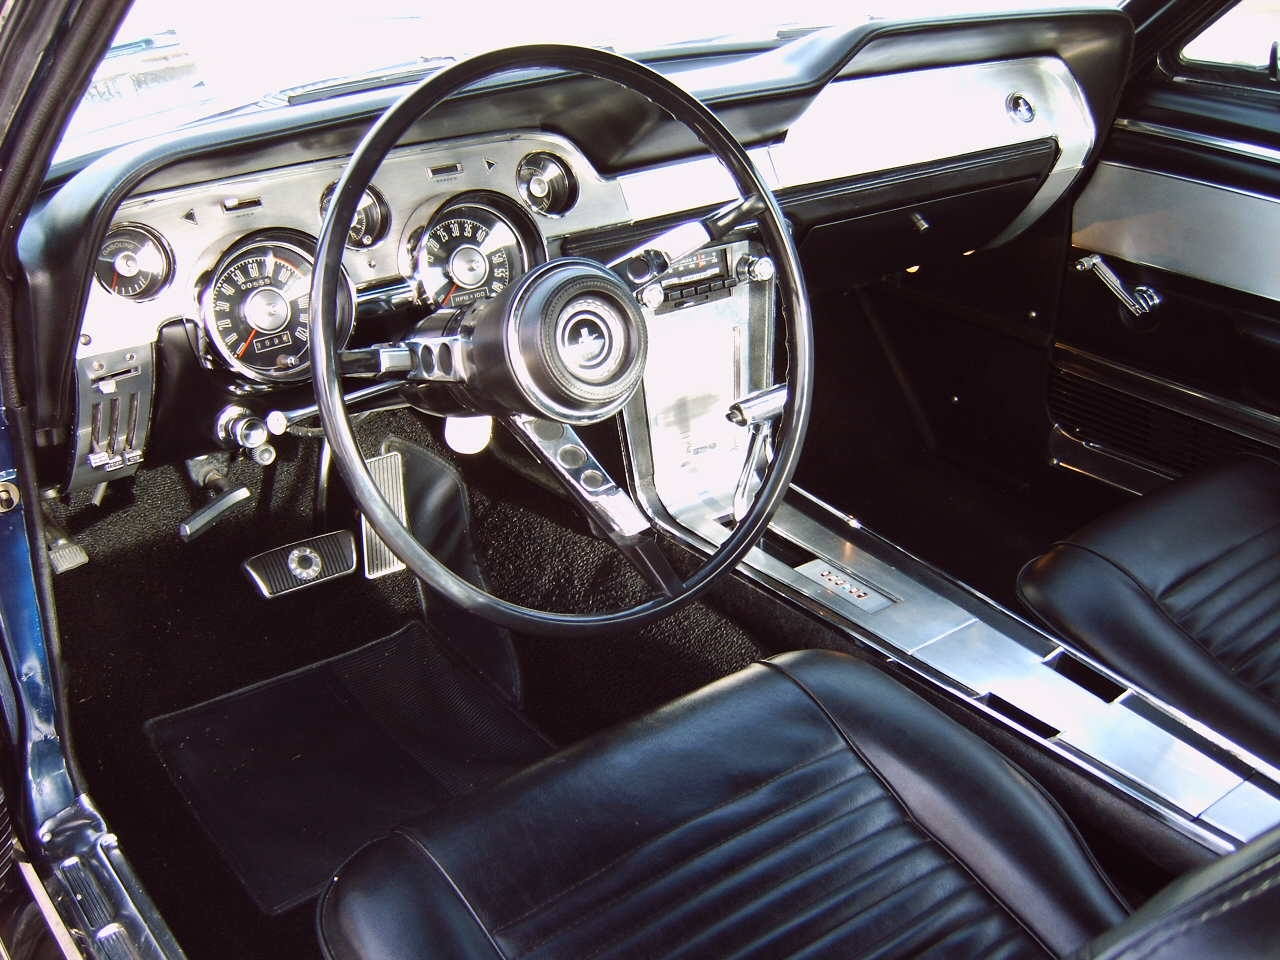 1967 ford mustang interior pictures cargurus for 1967 mustang interior pictures